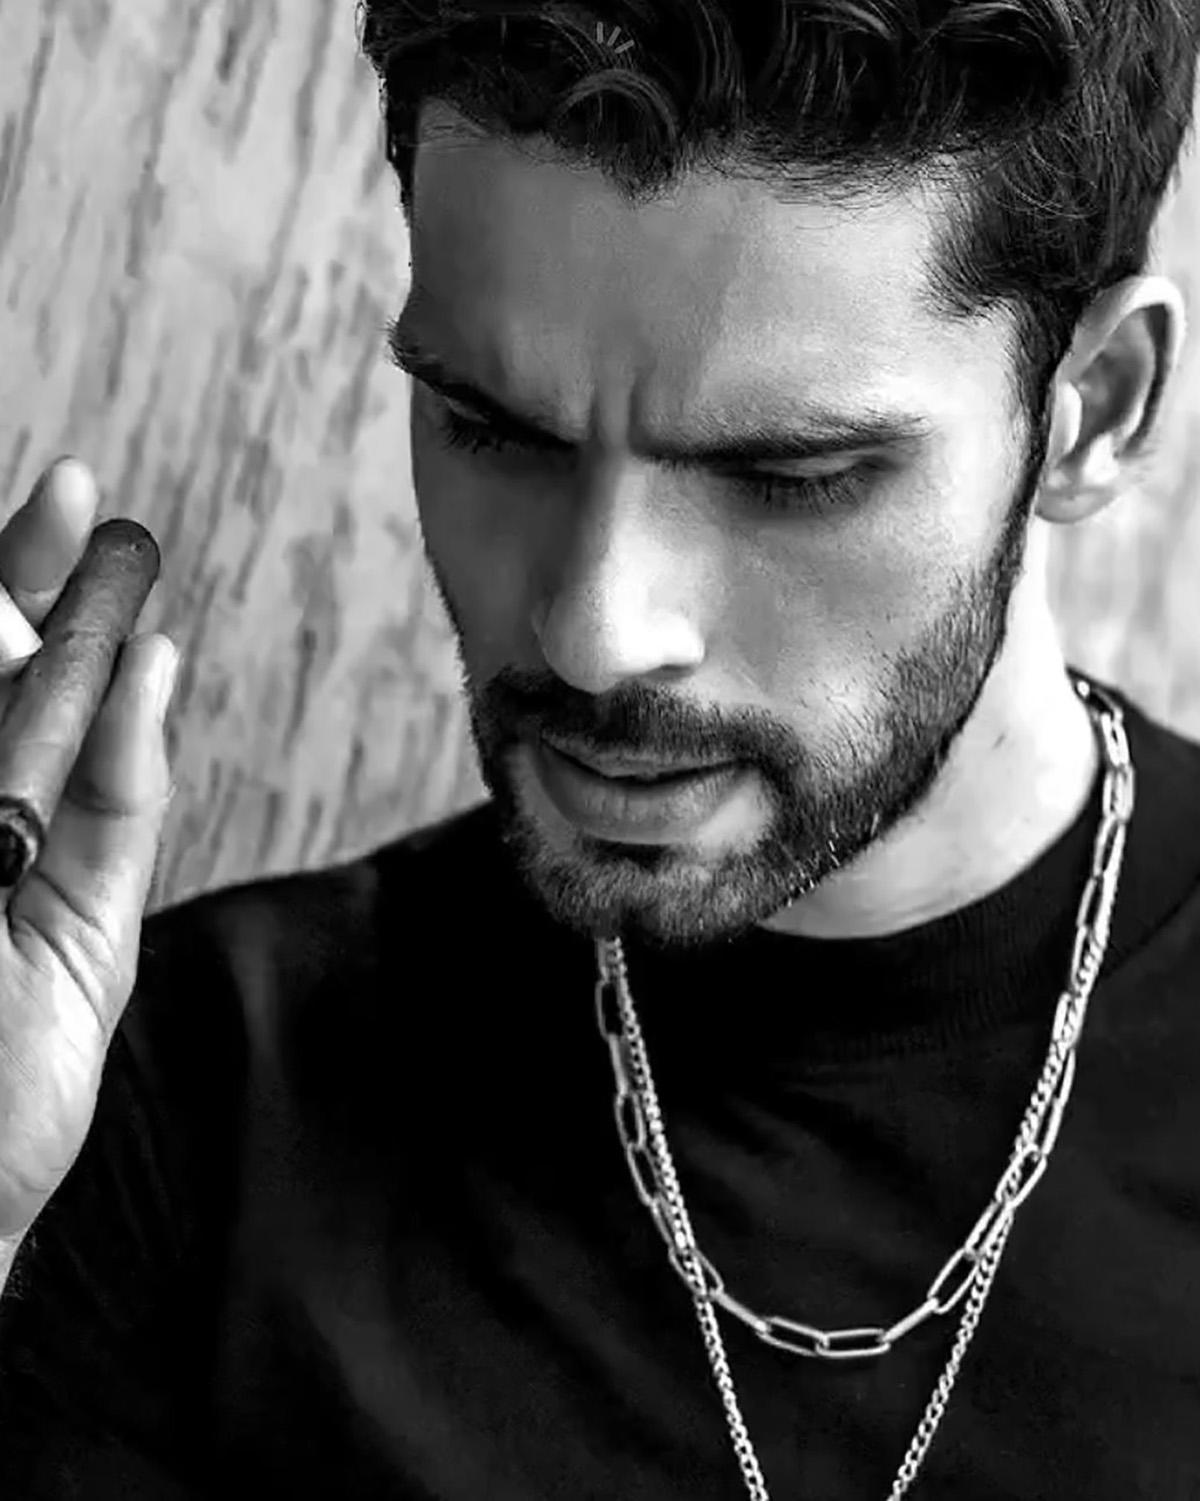 Gaurav Jugal's chiselled jawline only gets better with new photoshoots!